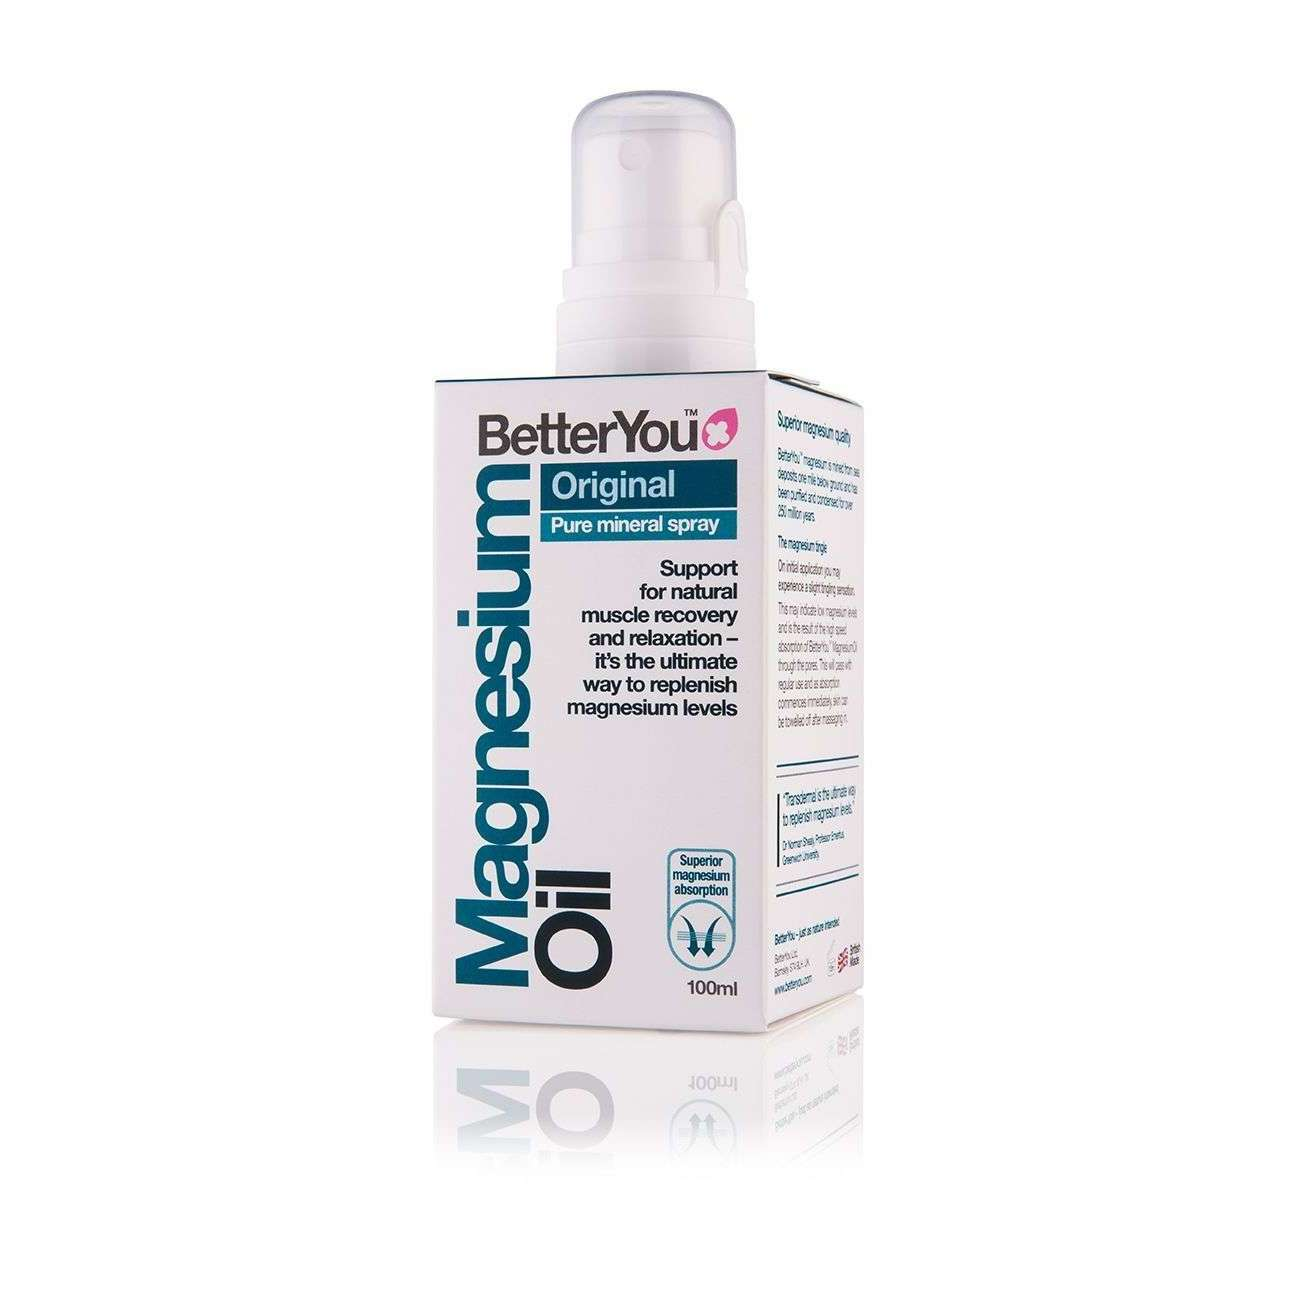 BetterYou BetterYou Magnesium Oil Original Spray